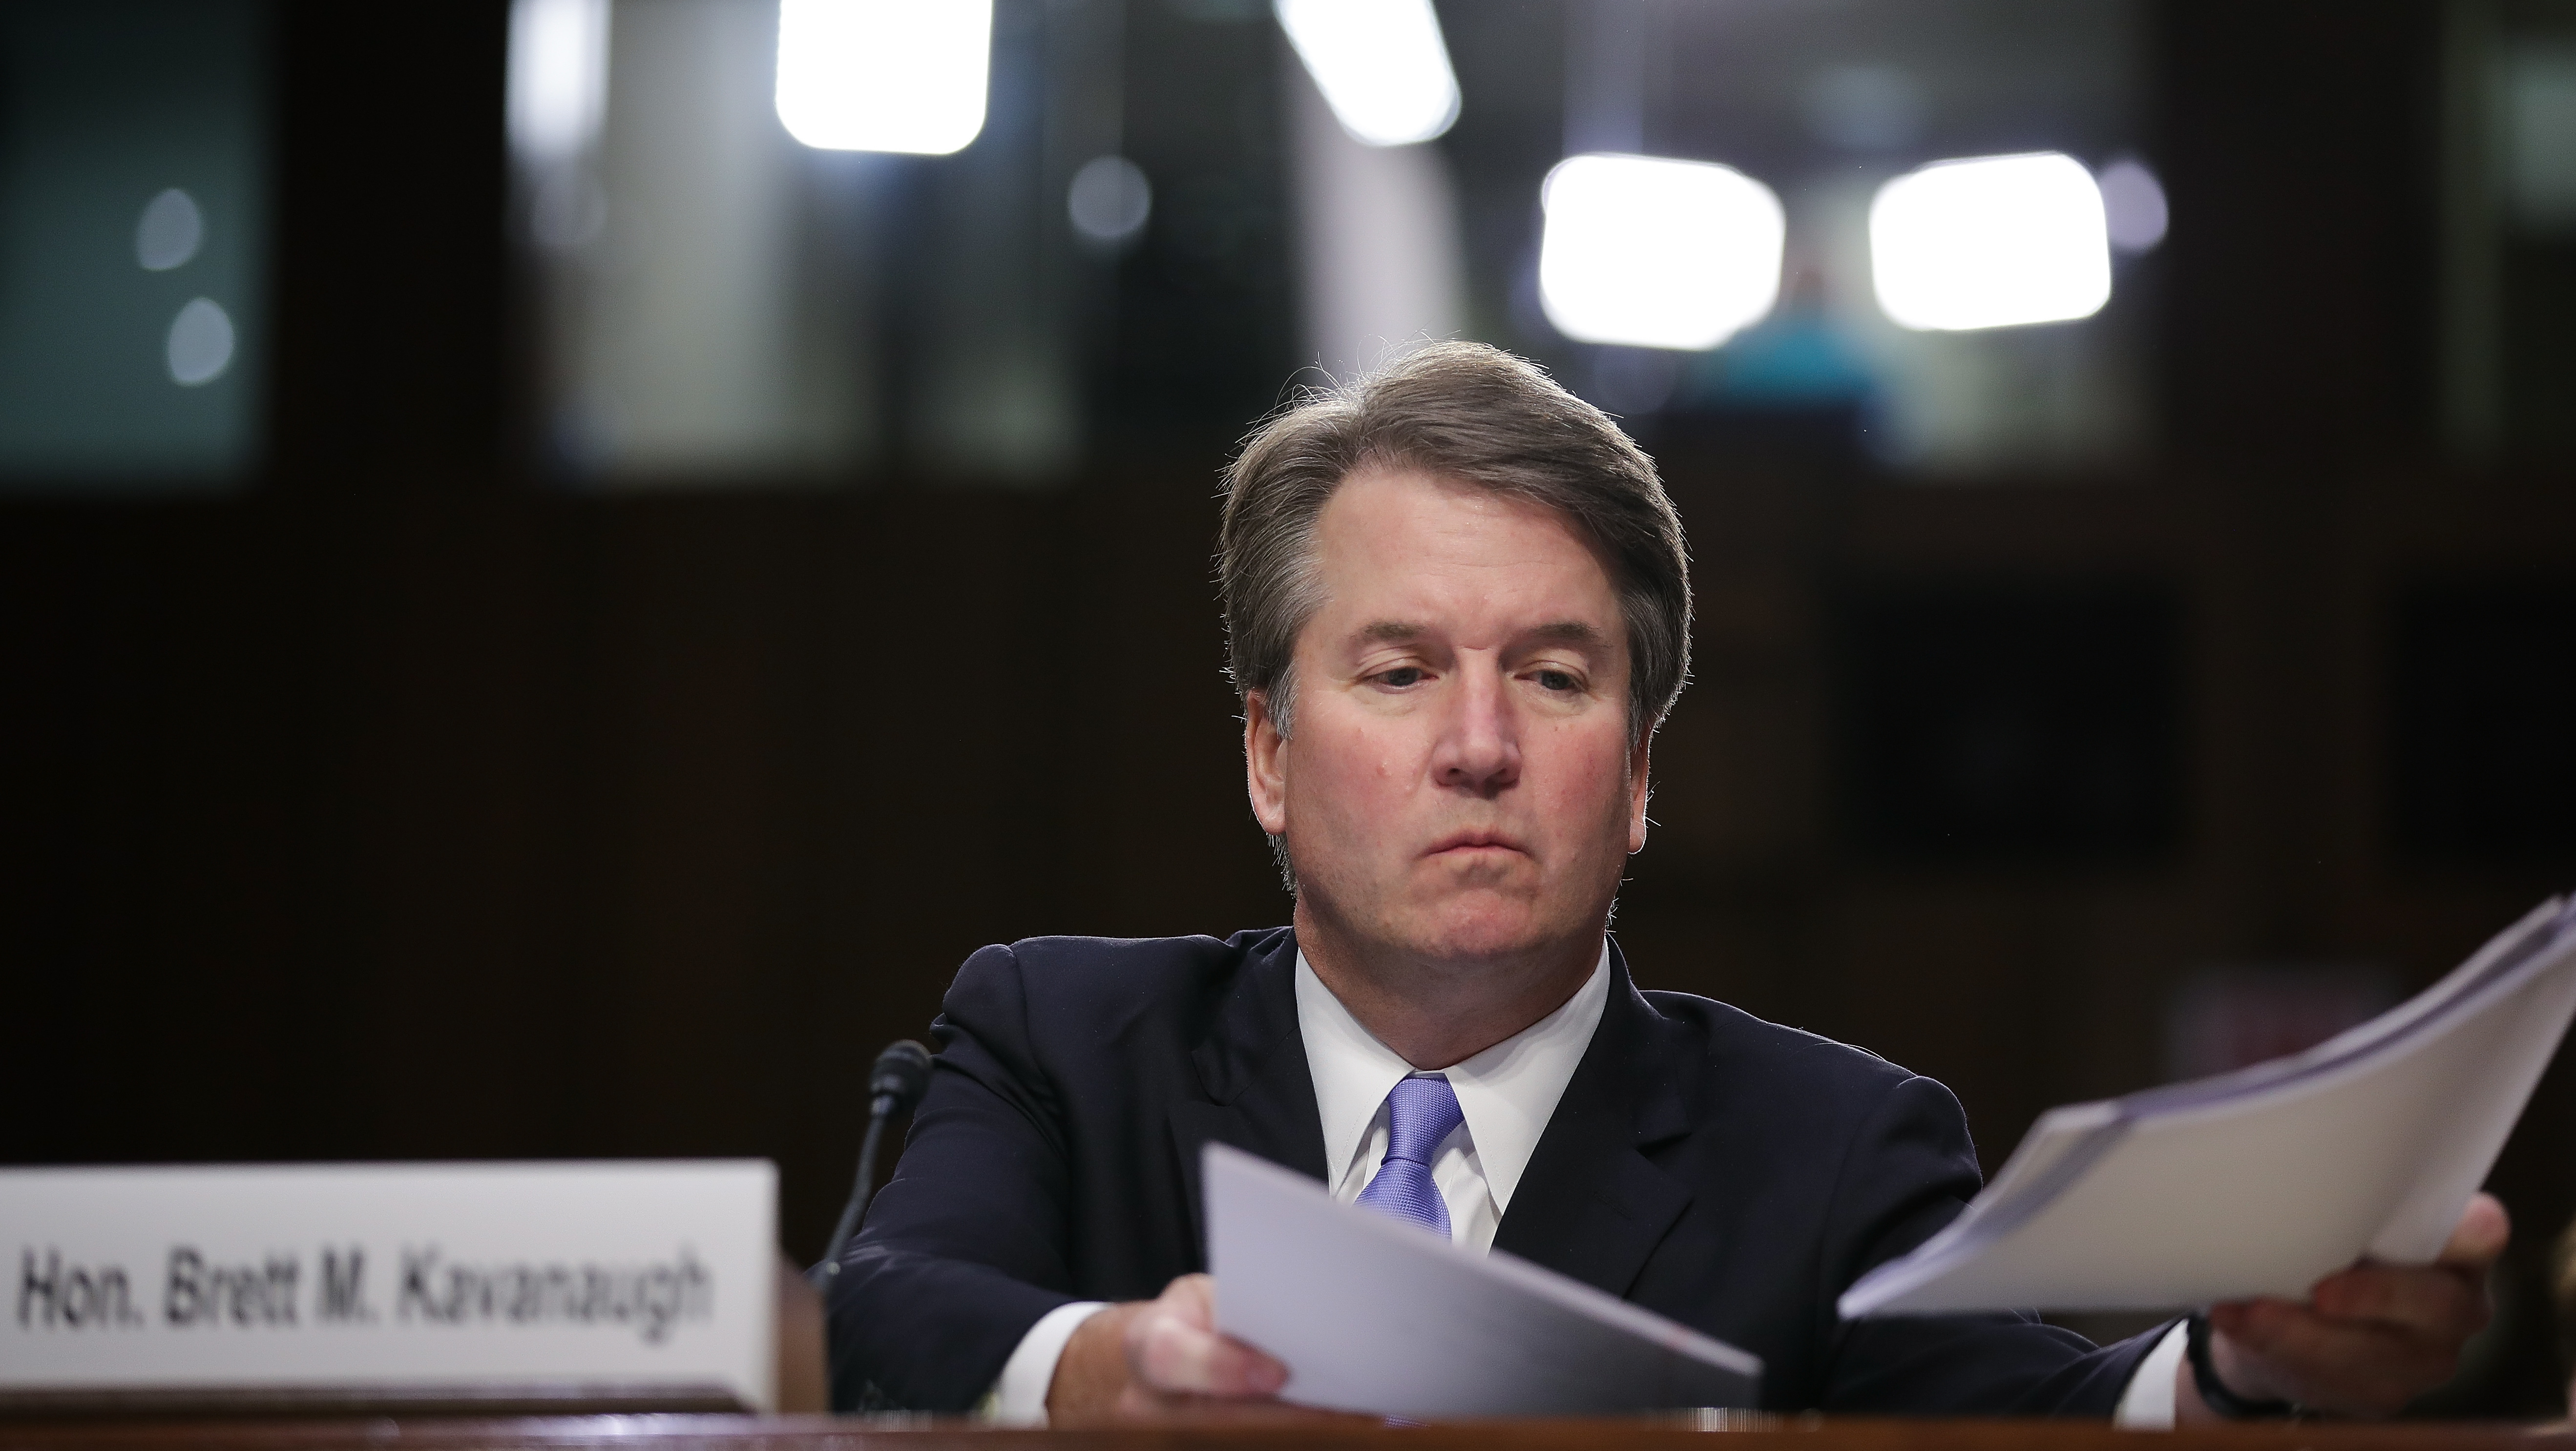 How Is Kavanaugh Likely To Rule On Critical Issues? Here's A Look At His Record